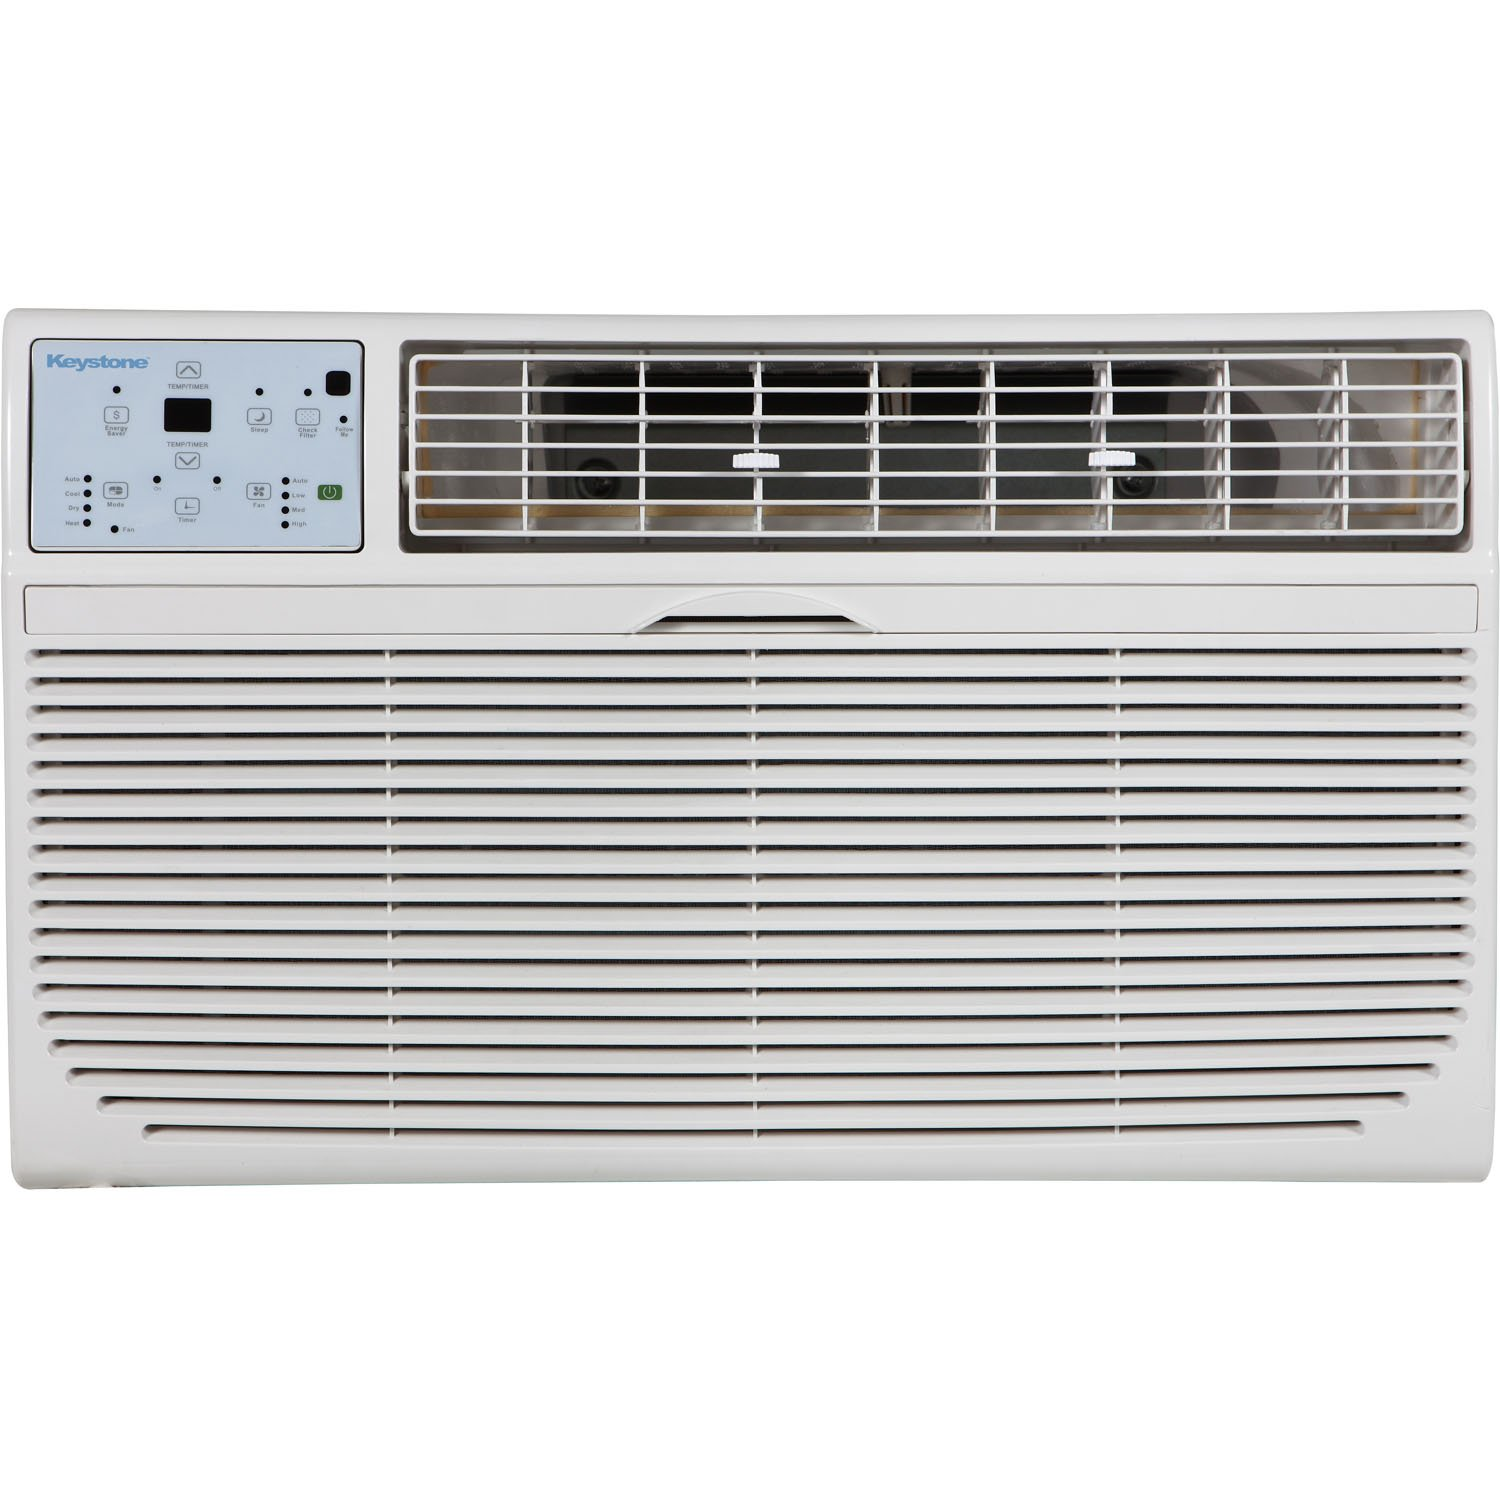 Keystone KSTAT12-2C 12000 BTU 230V Through-The-Wall Air Conditioner with Follow Me LCD Remote Control